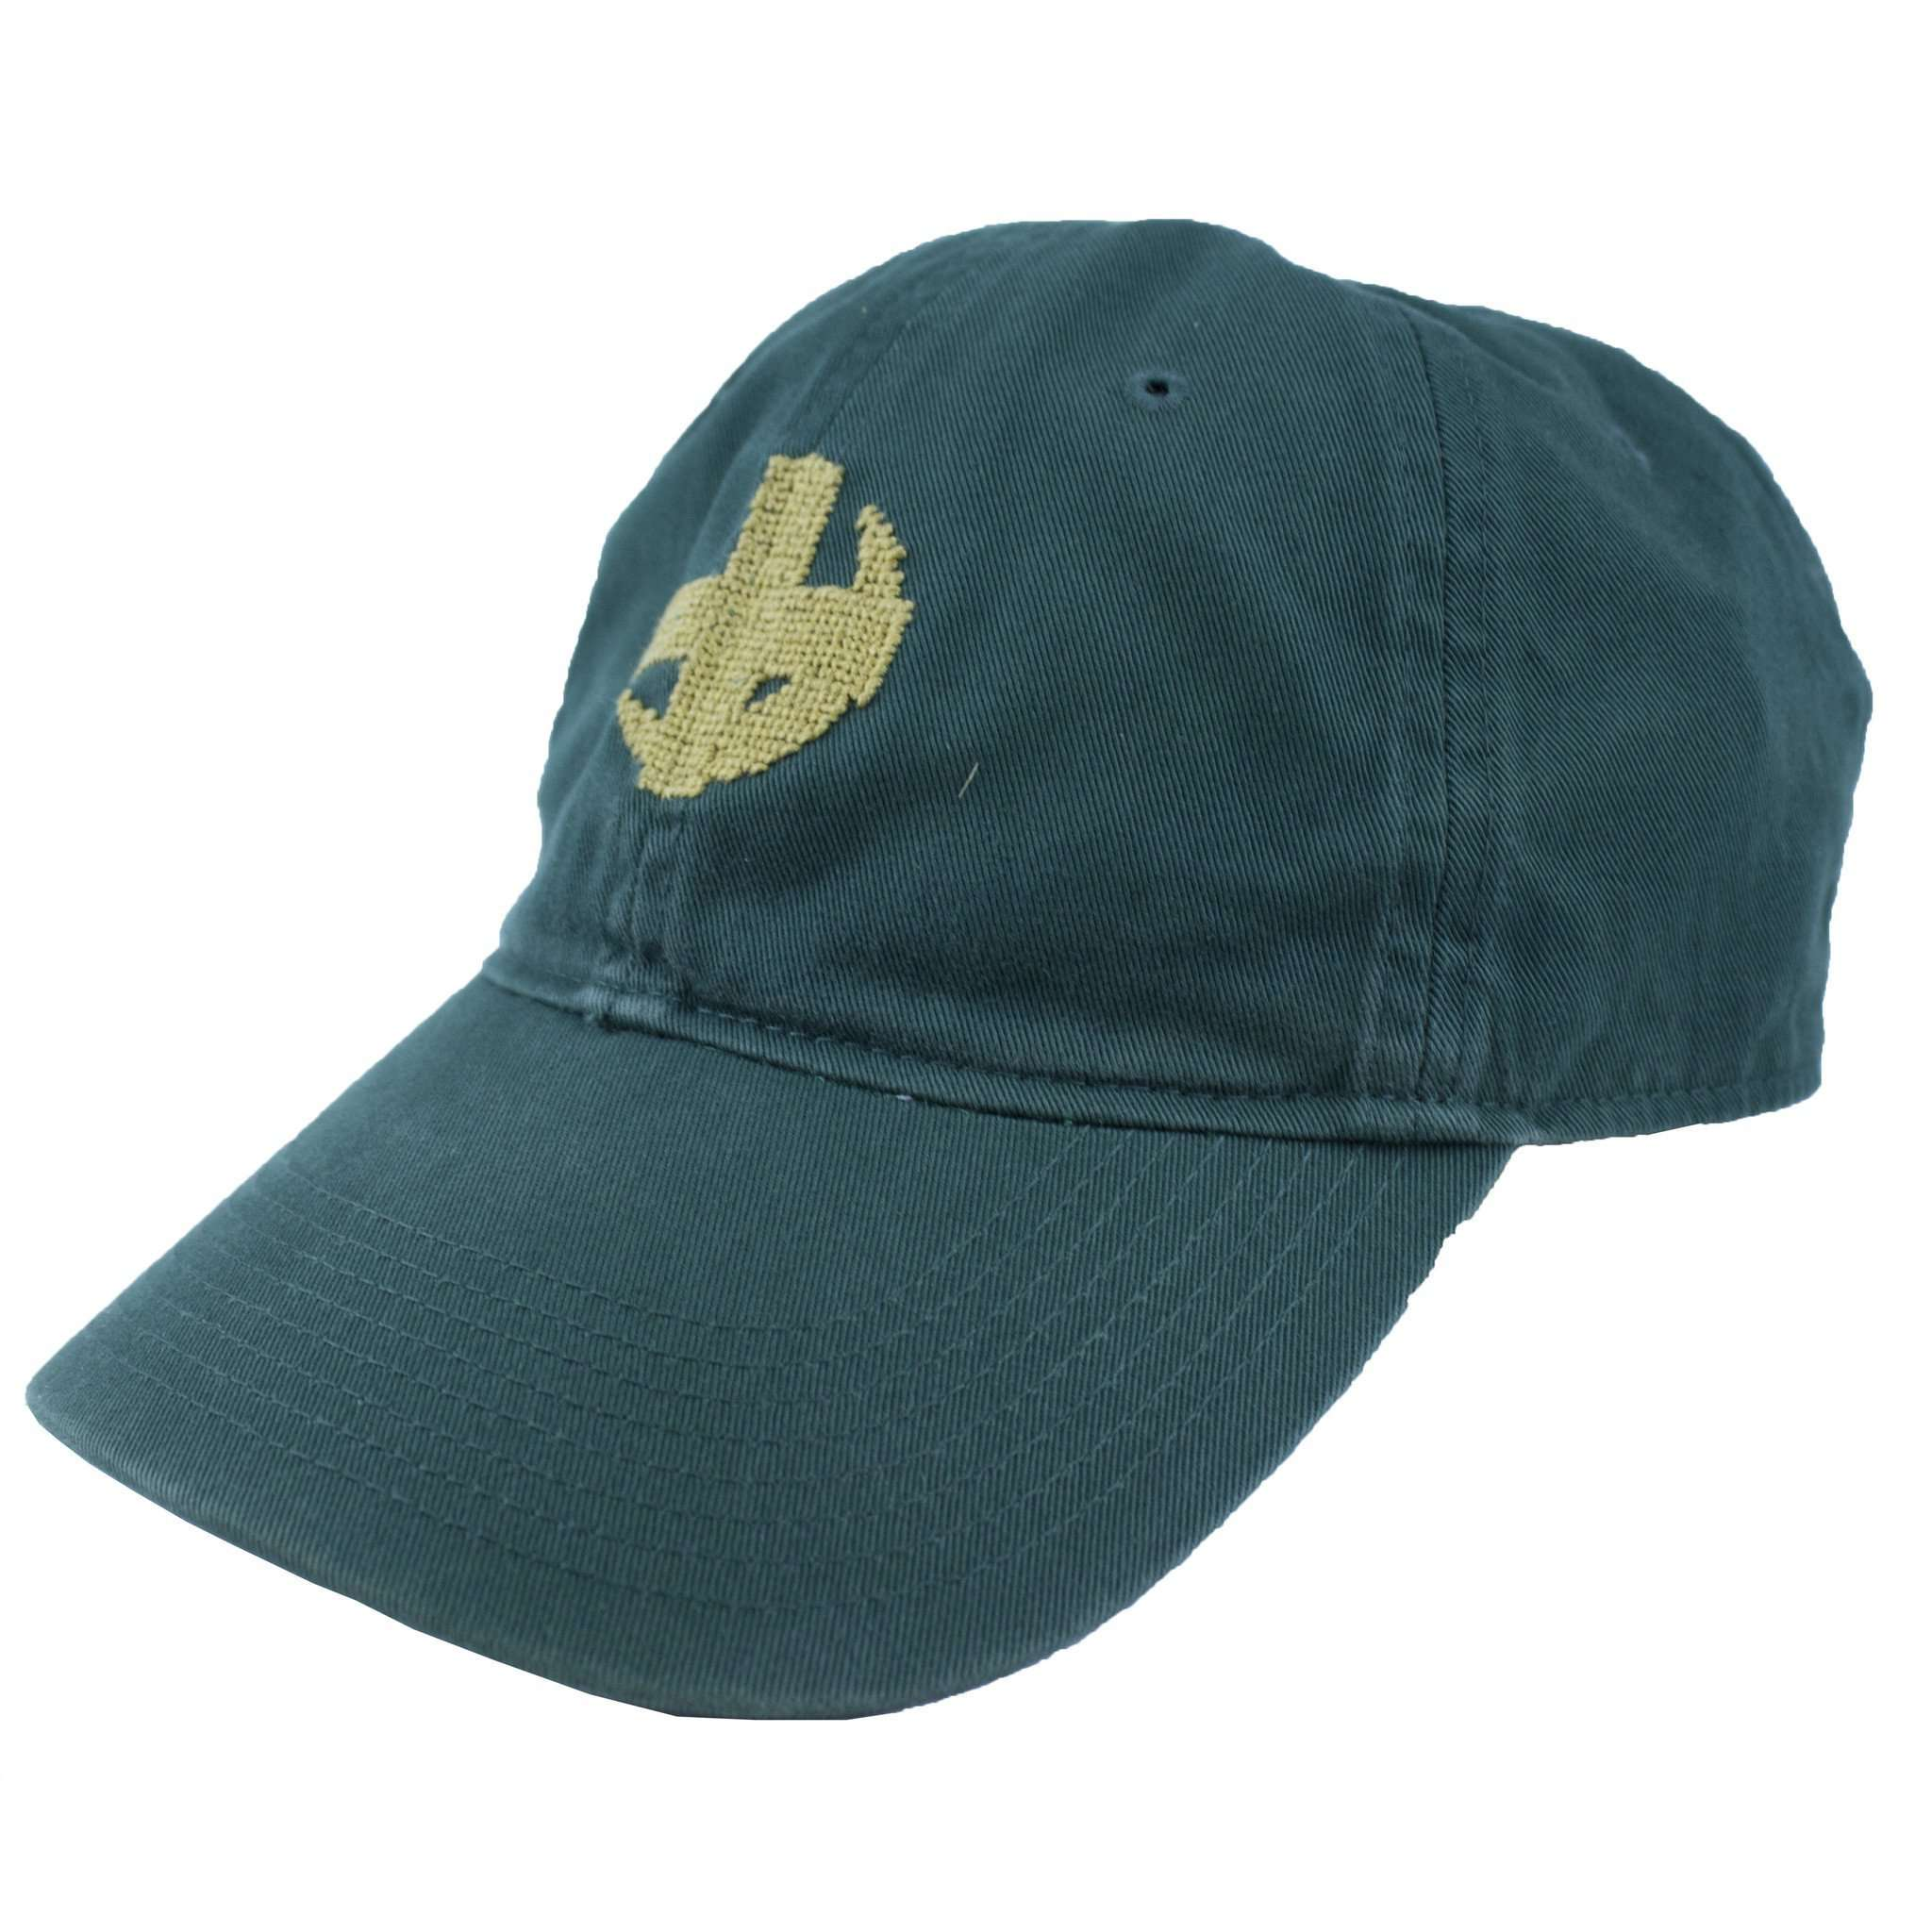 Hats/Visors - Lambda Chi Alpha Needlepoint Hat In Green By Smathers & Branson